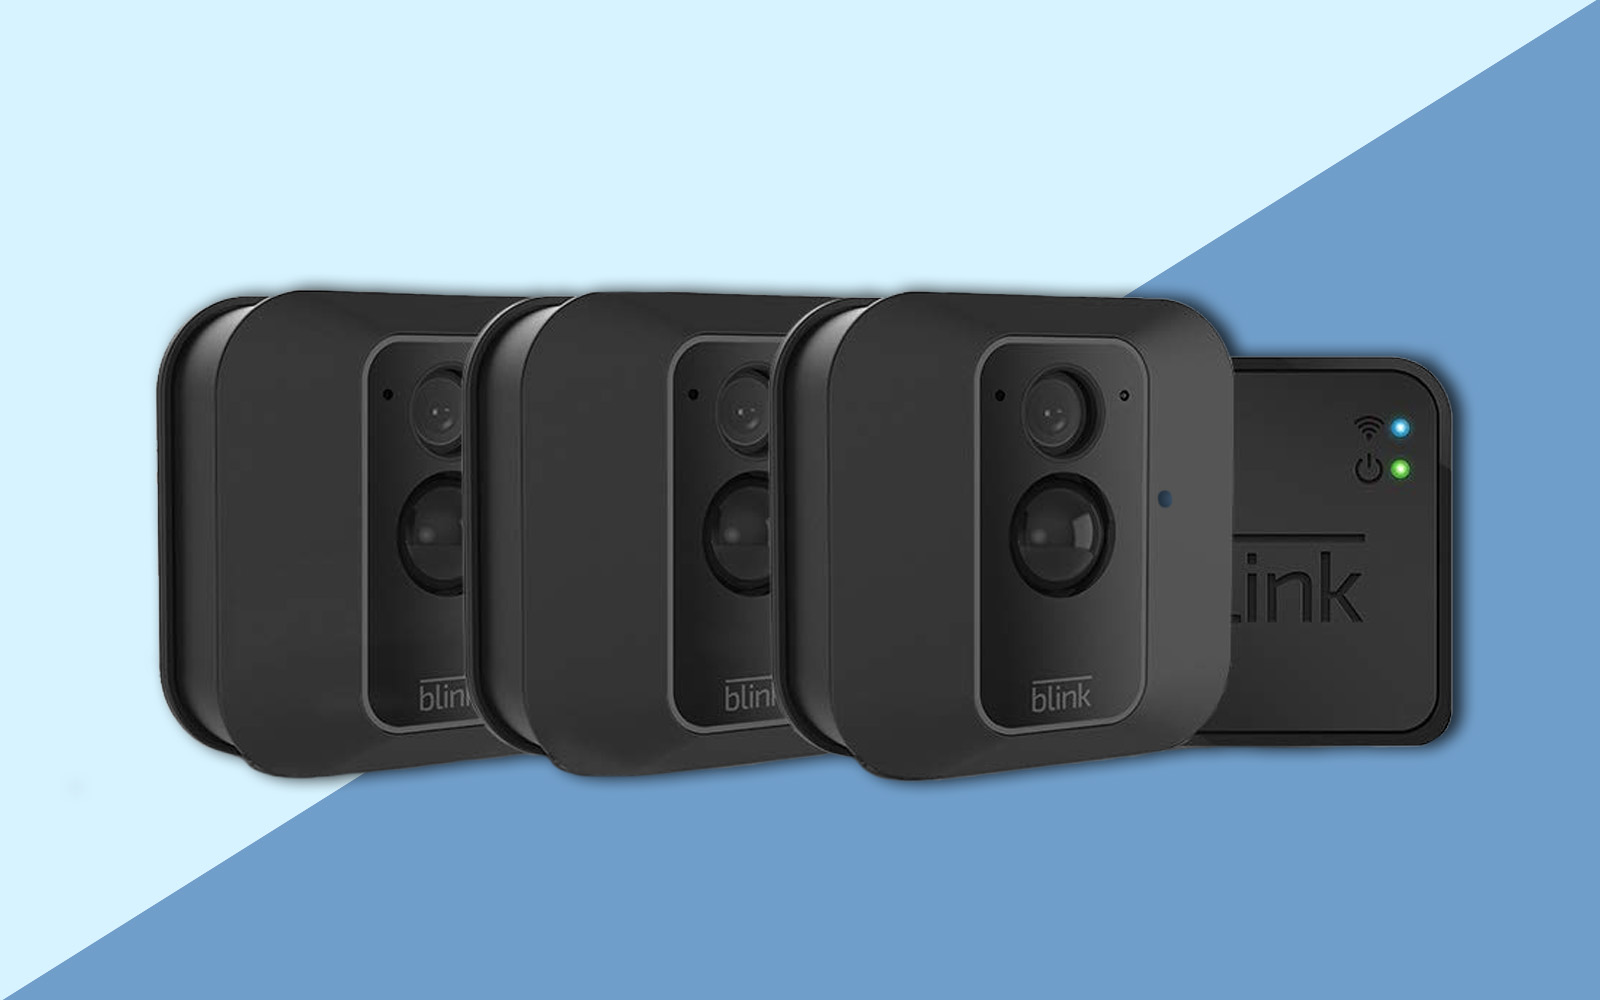 Prime Day 2019: Blink XT2 Smart Security Camera Deal